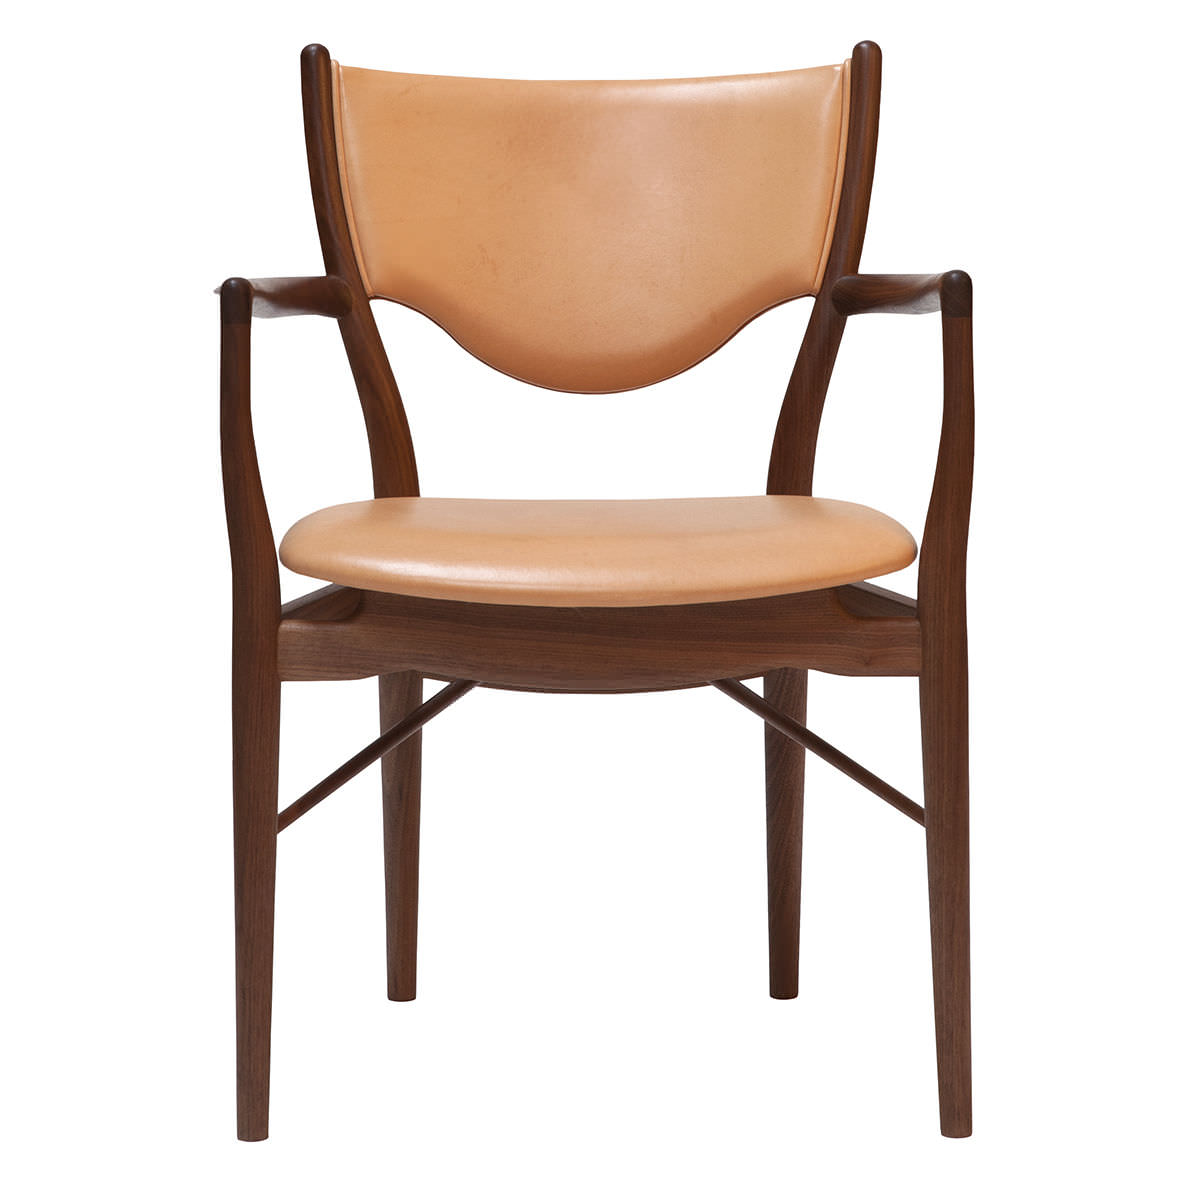 Wooden chairs with armrest - Scandinavian Design Chair Fabric Wooden Upholstered 46